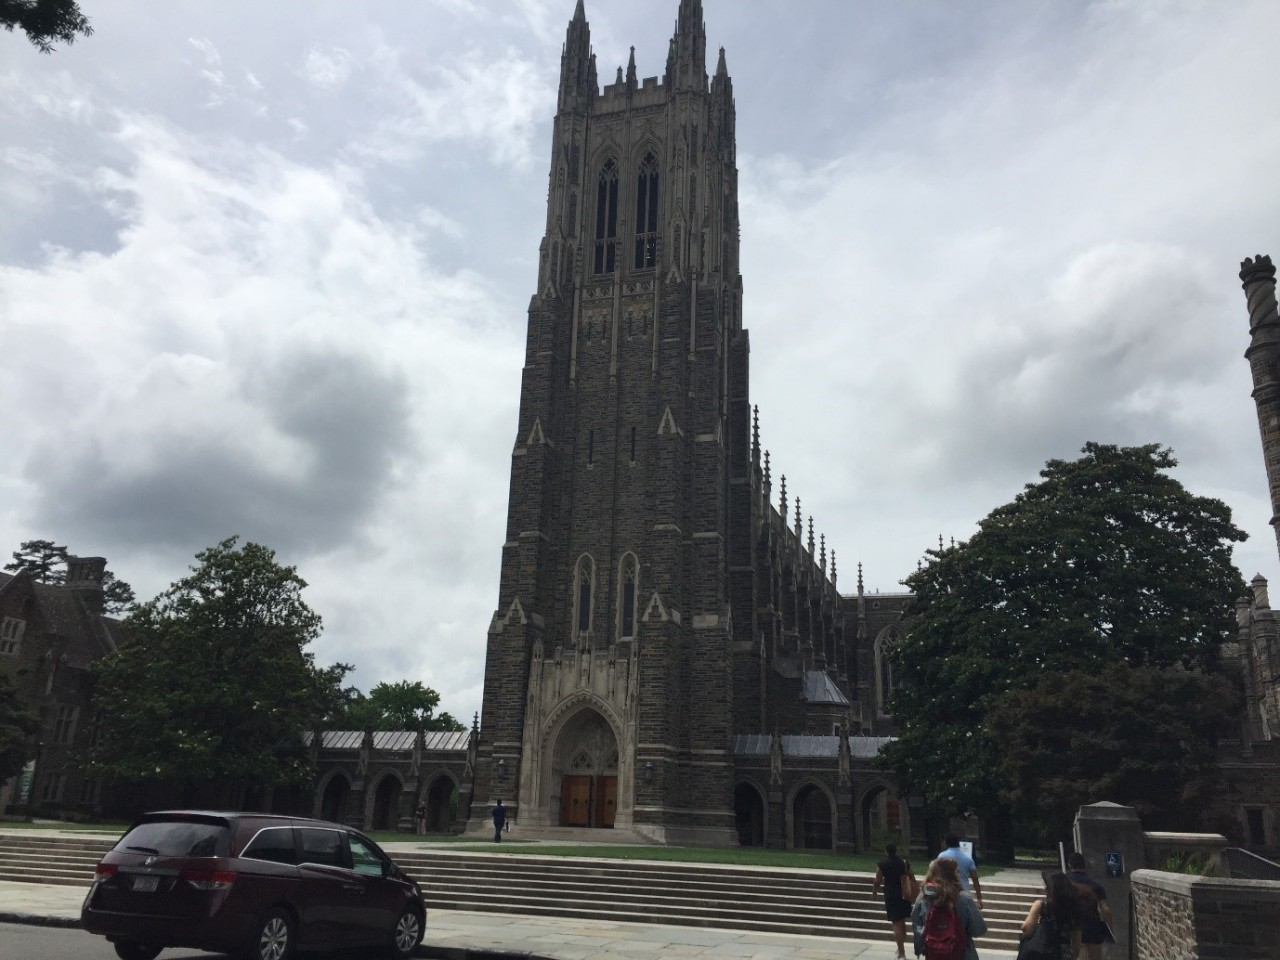 Science Policy Summer Institute at Duke University, North Carolina